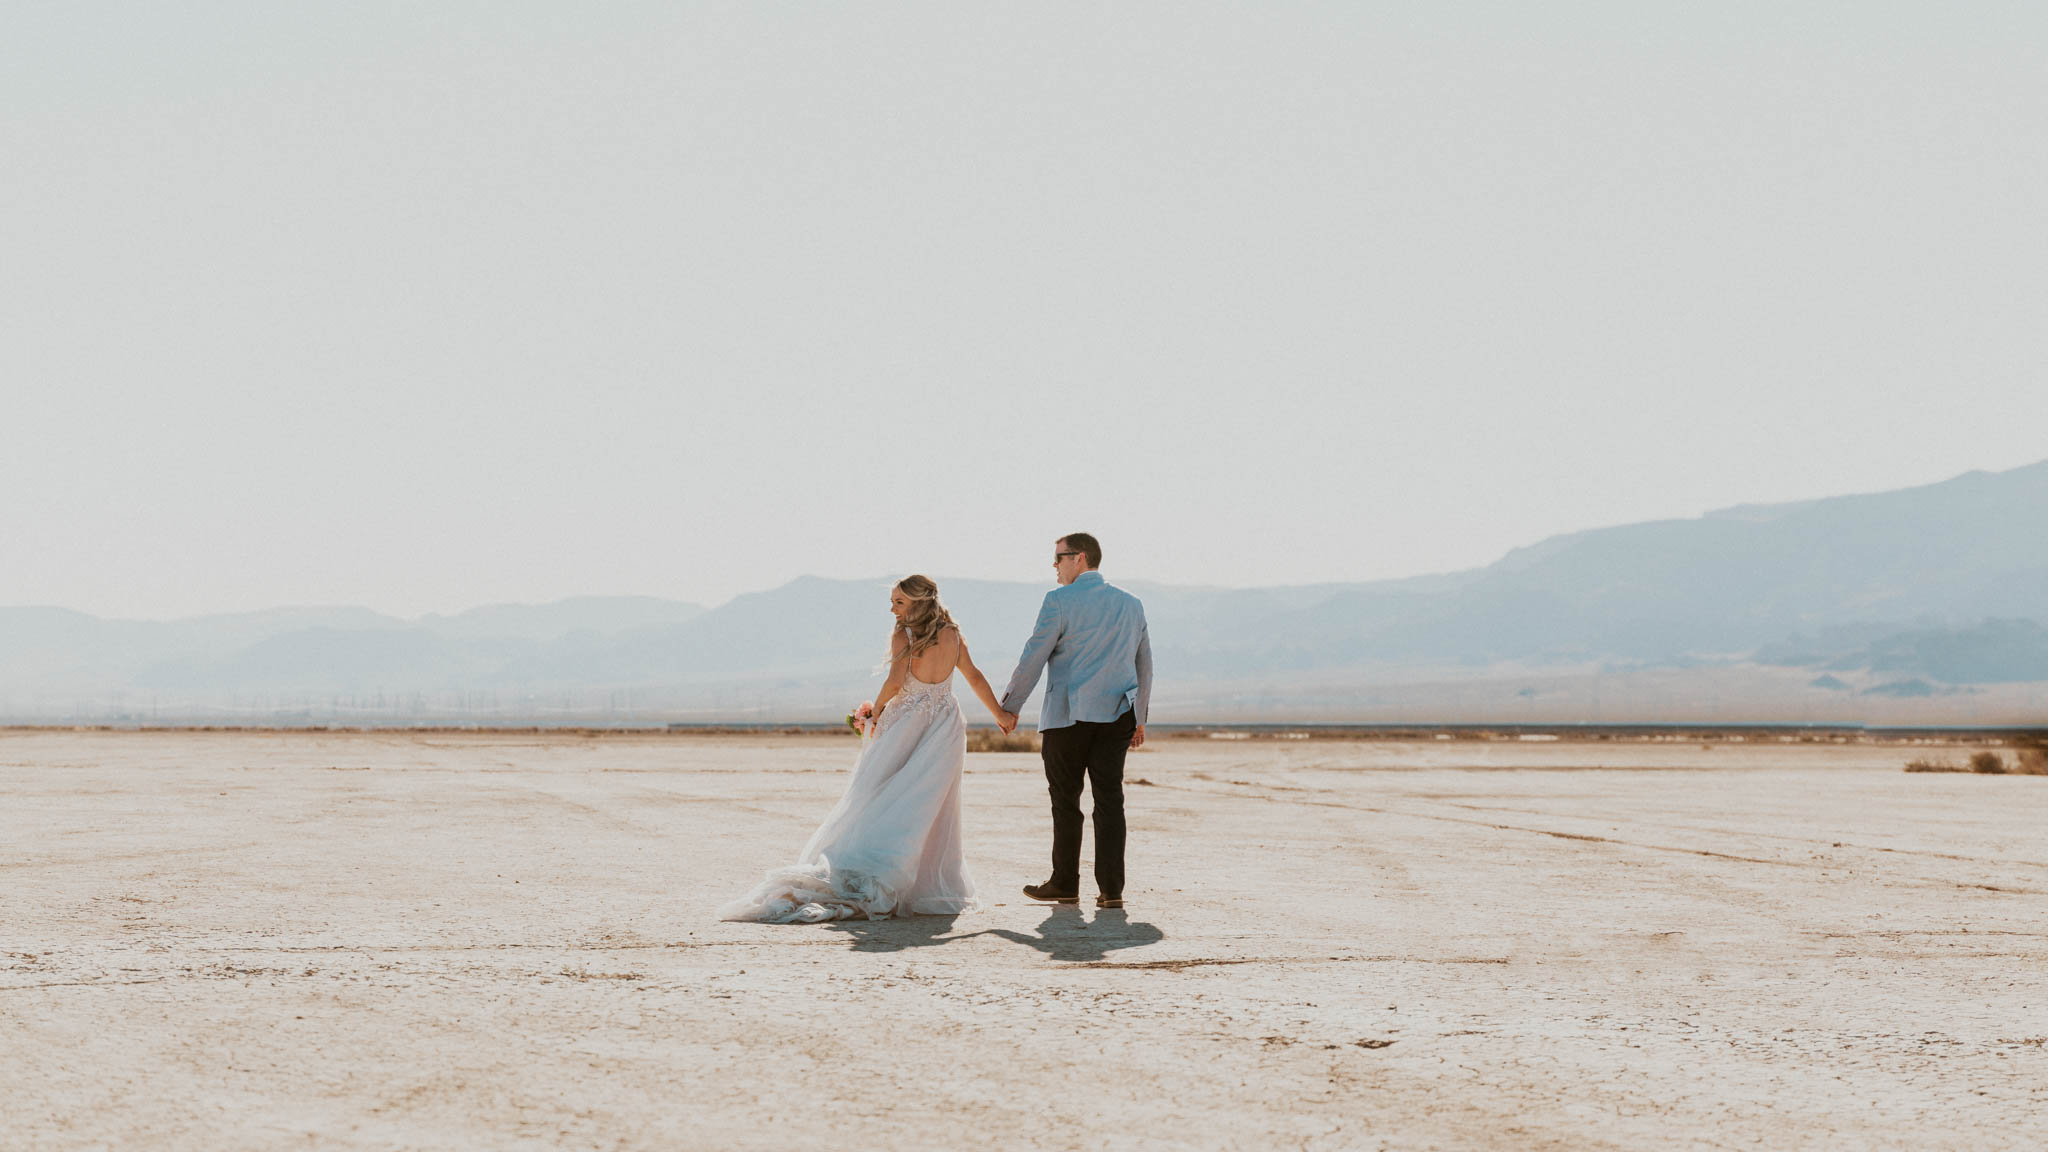 Ashley + Ben | Las Vegas, Nevada | a desert